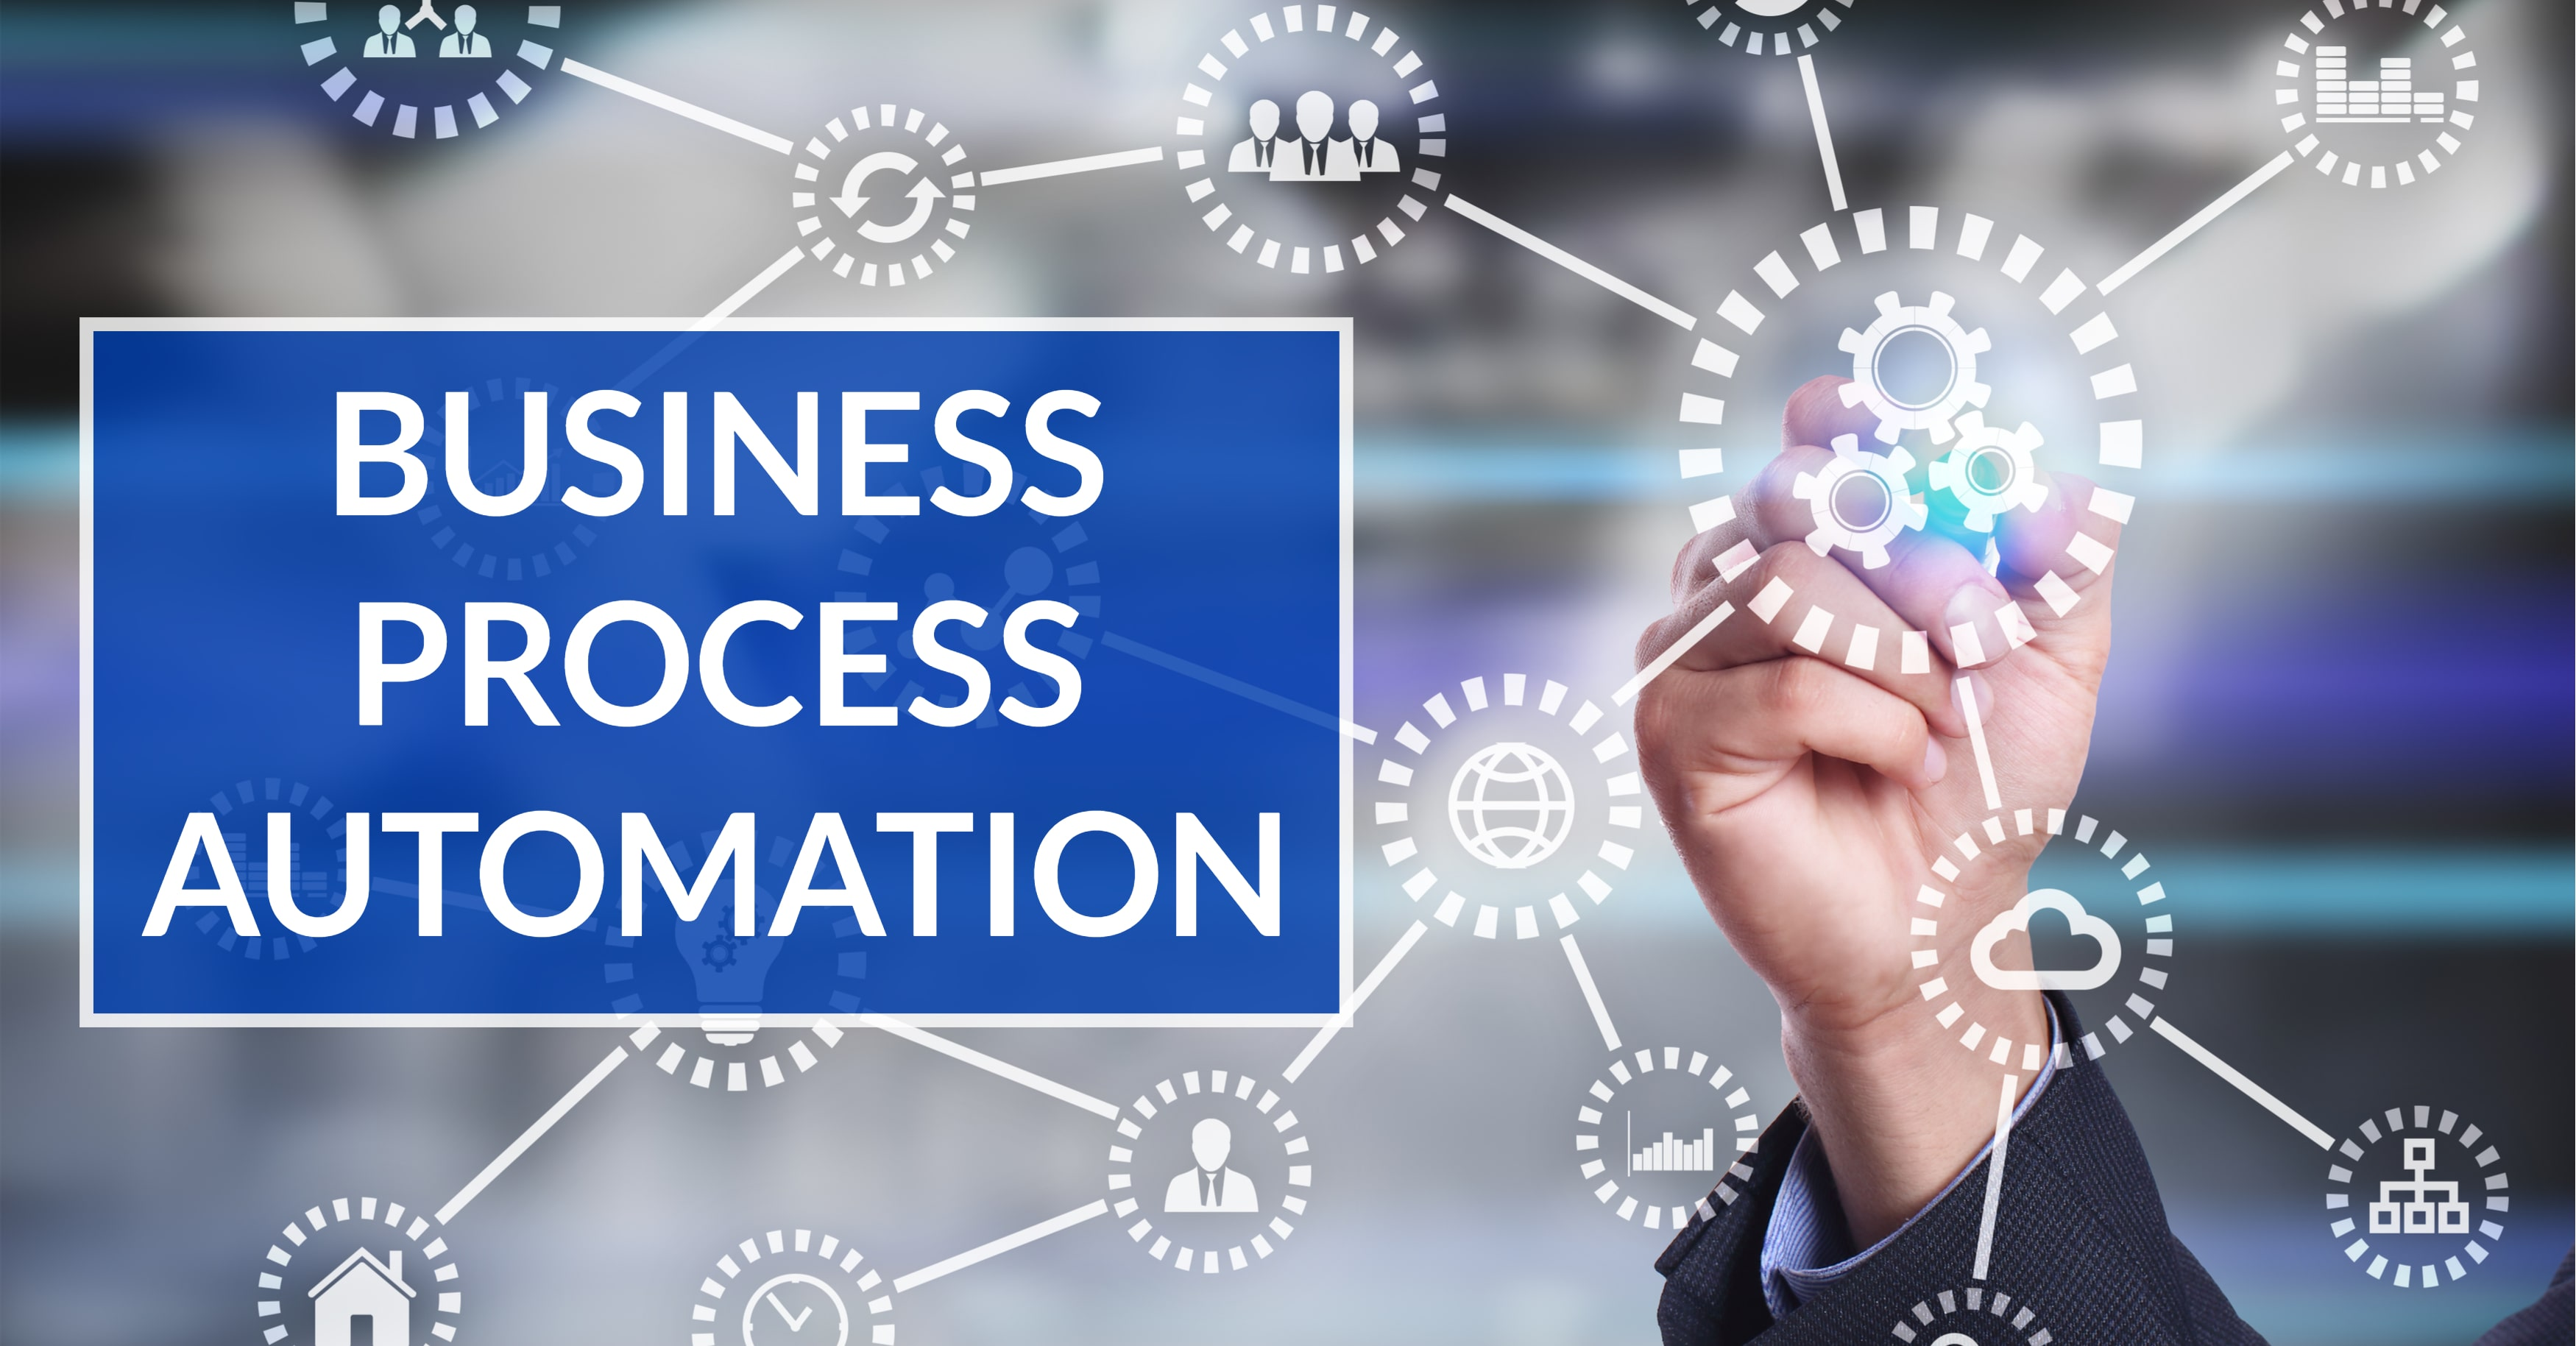 Risks and Rewards of Business Process Automation